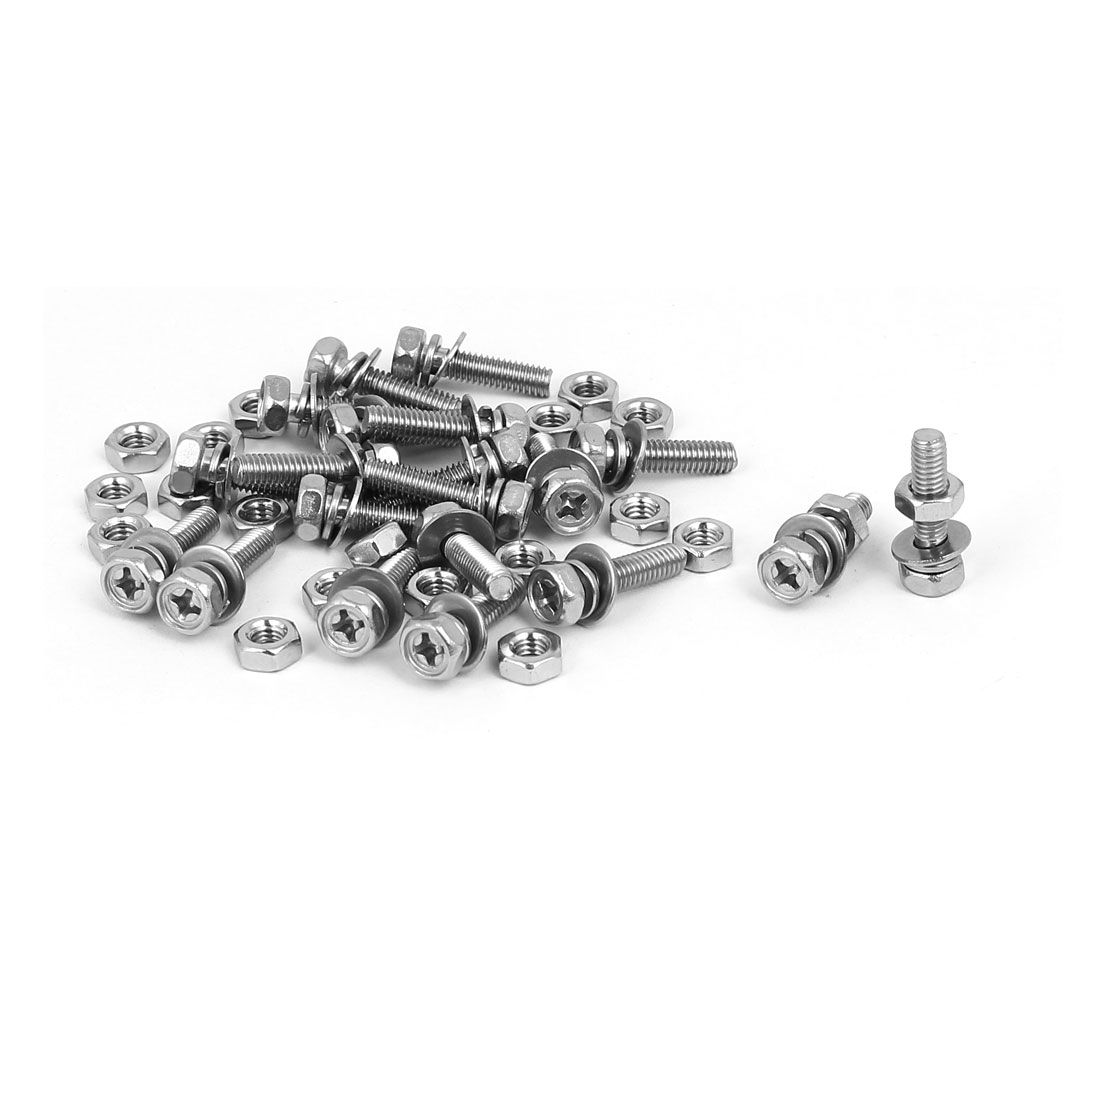 M4 x 16mm 304 Stainless Steel Phillips Hex Head Bolts Nuts w Washers 20 Sets